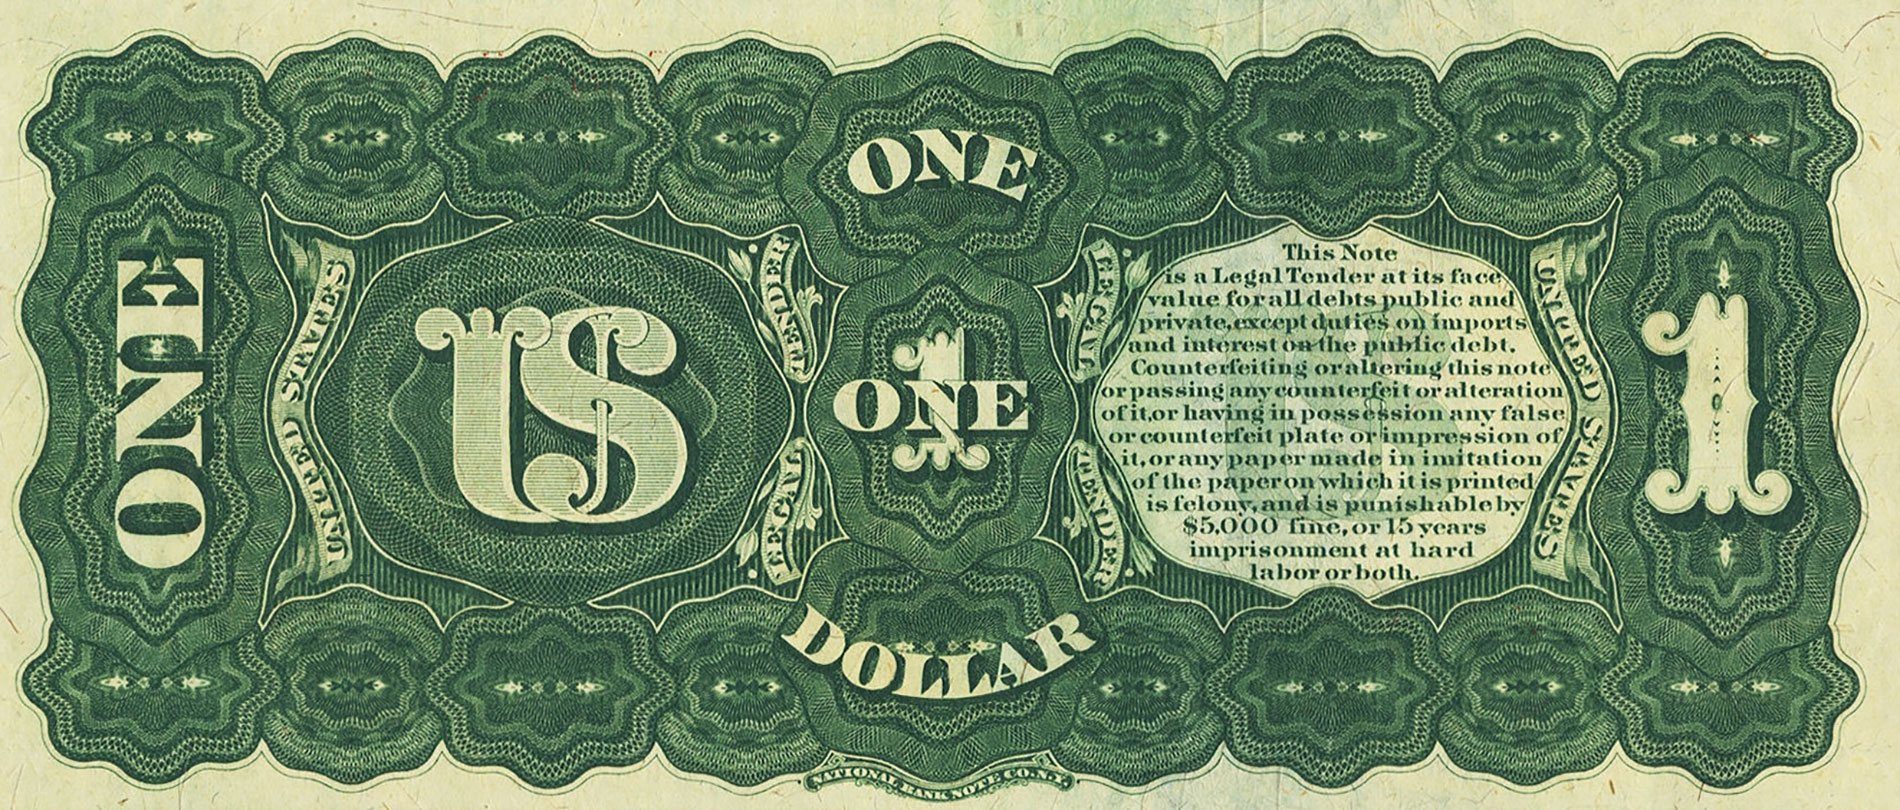 Reverse of Series 1869 $1 Legal Tender Note Rainbow Note; courtesy of Heritage Auctions